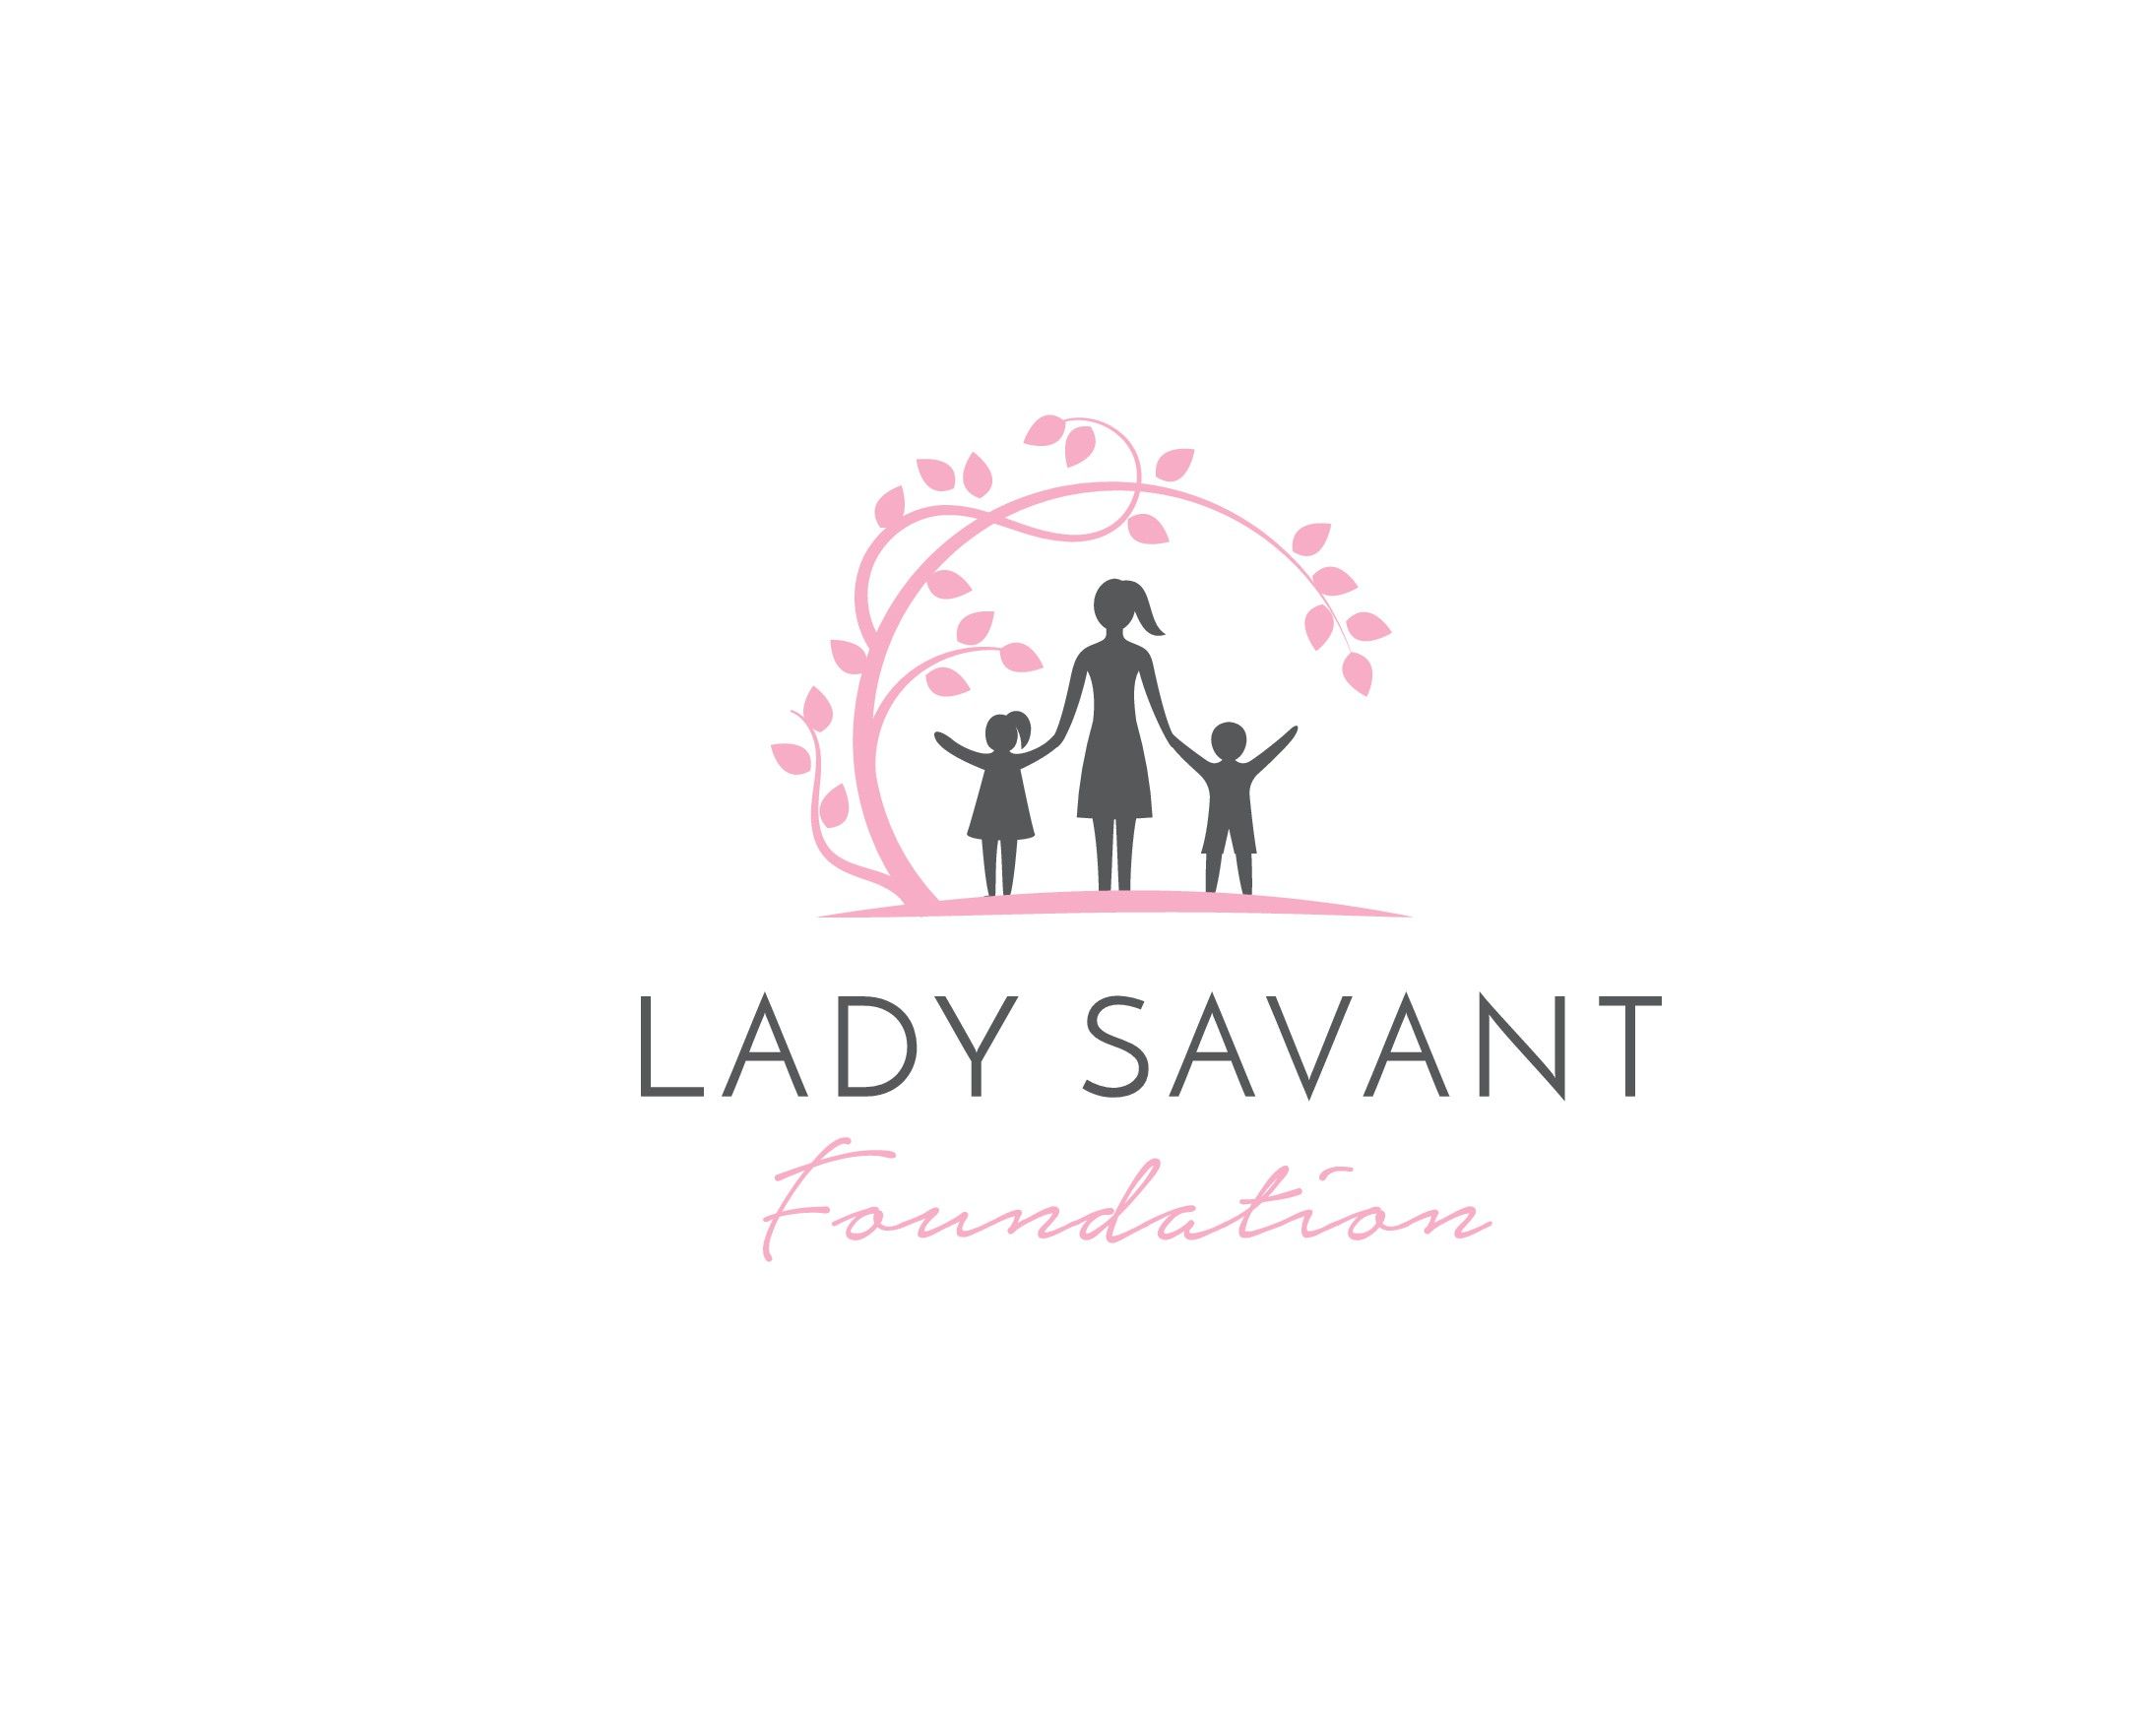 Need a logo asap for non profit focused on helping kids!